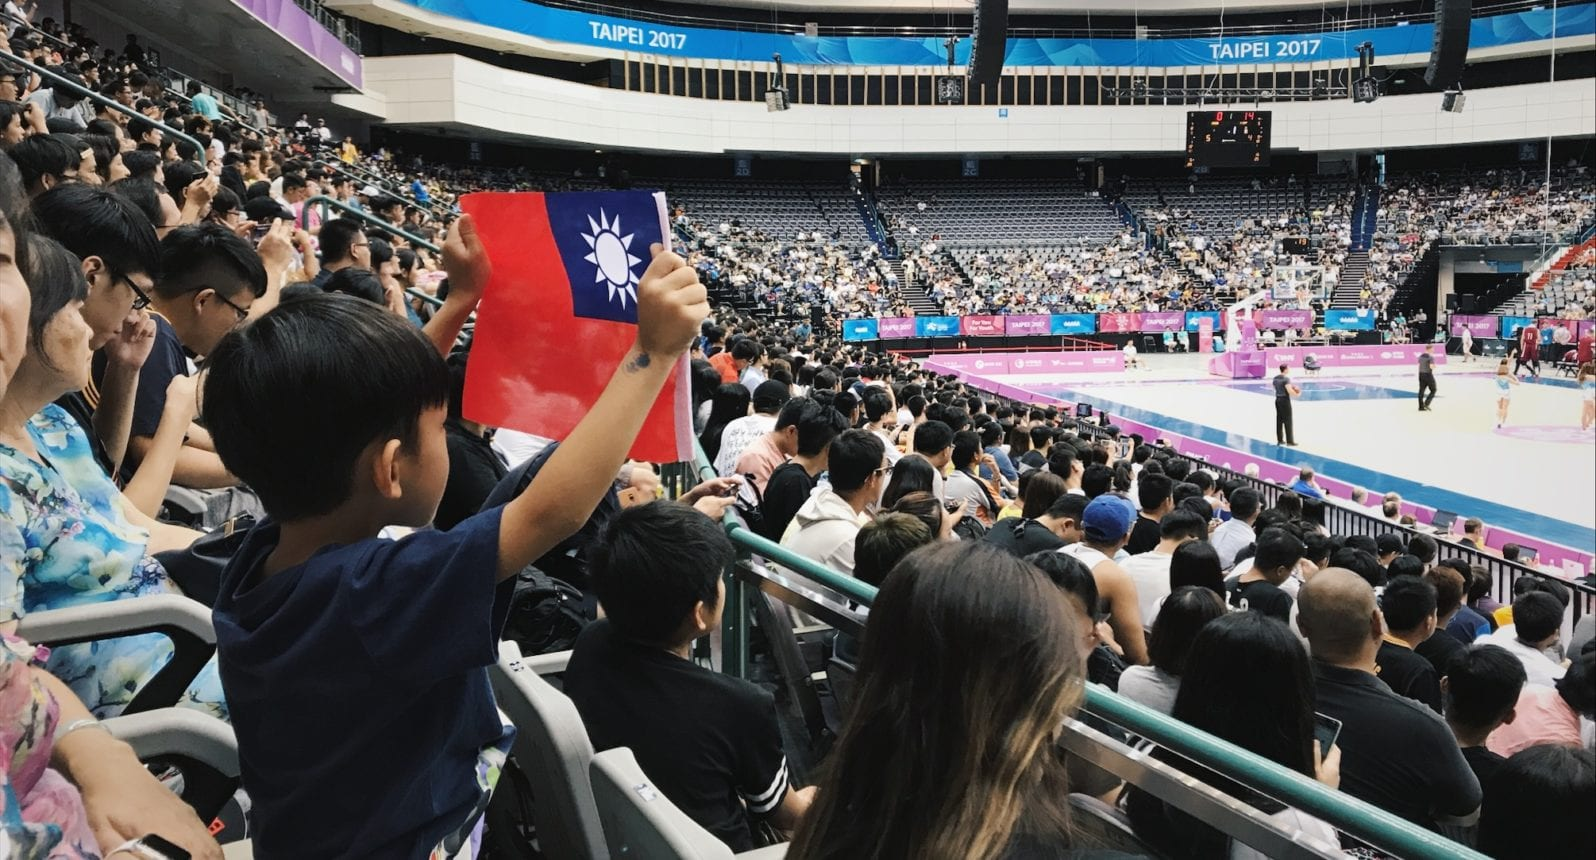 2017 taipei universiade